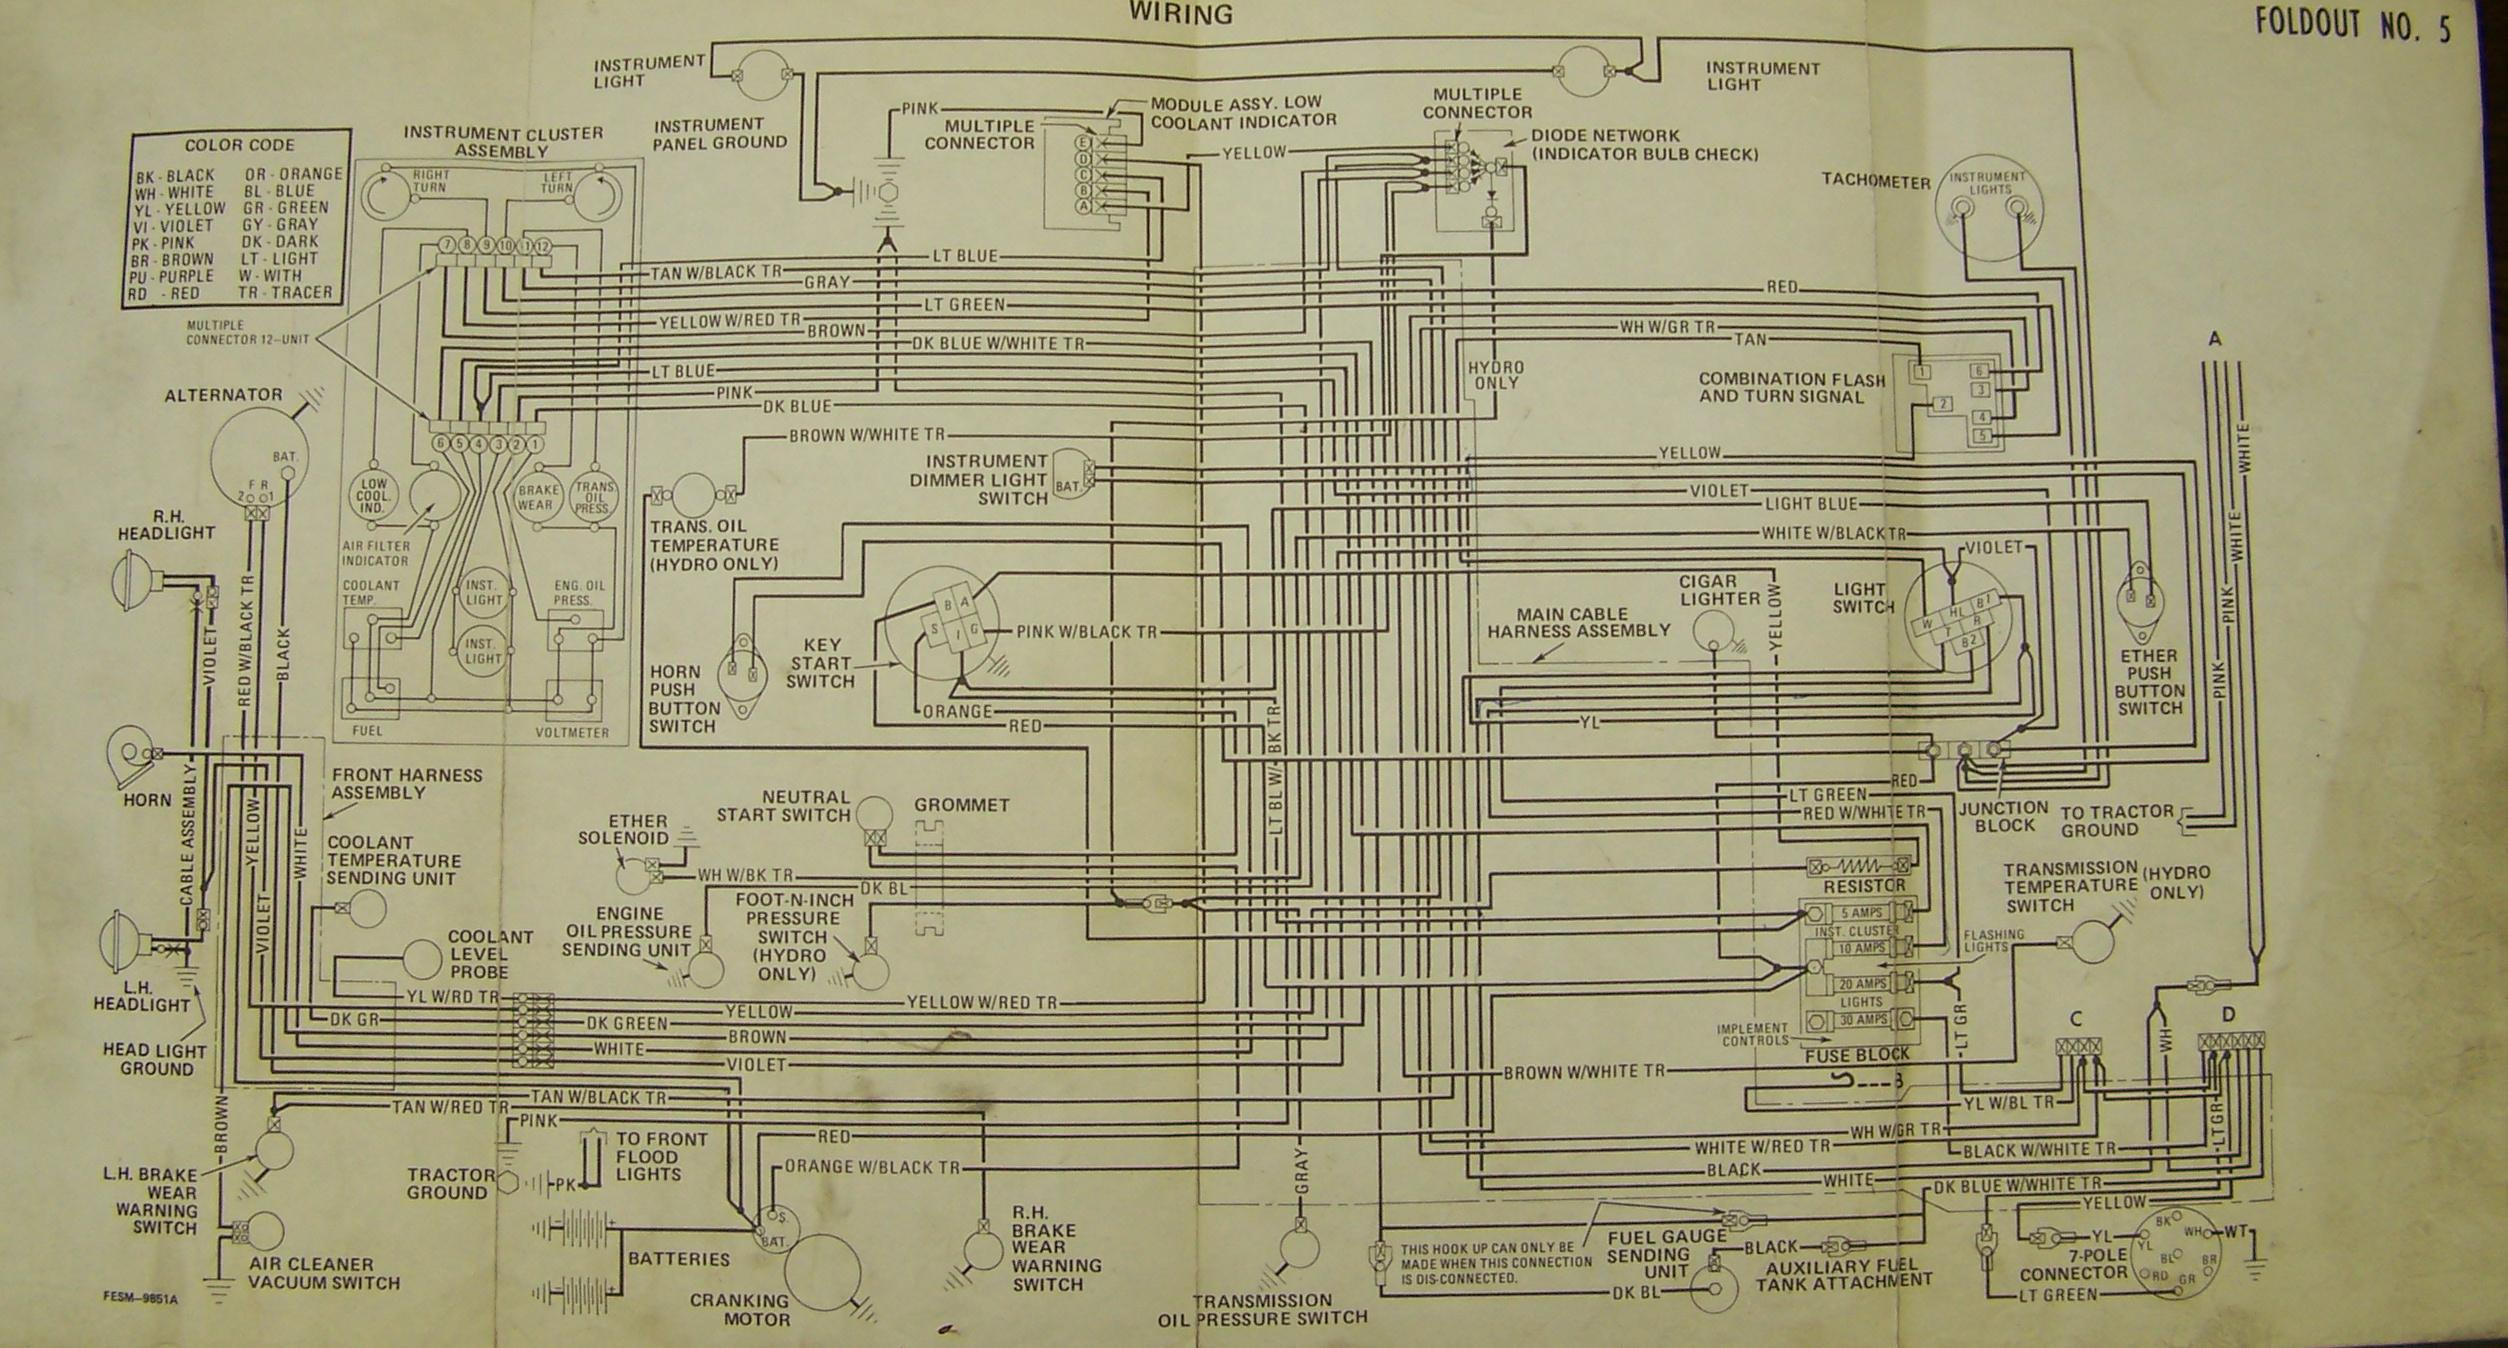 international 384 wiring diagram #11 2001 International Truck Wiring Diagrams international 384 wiring diagram